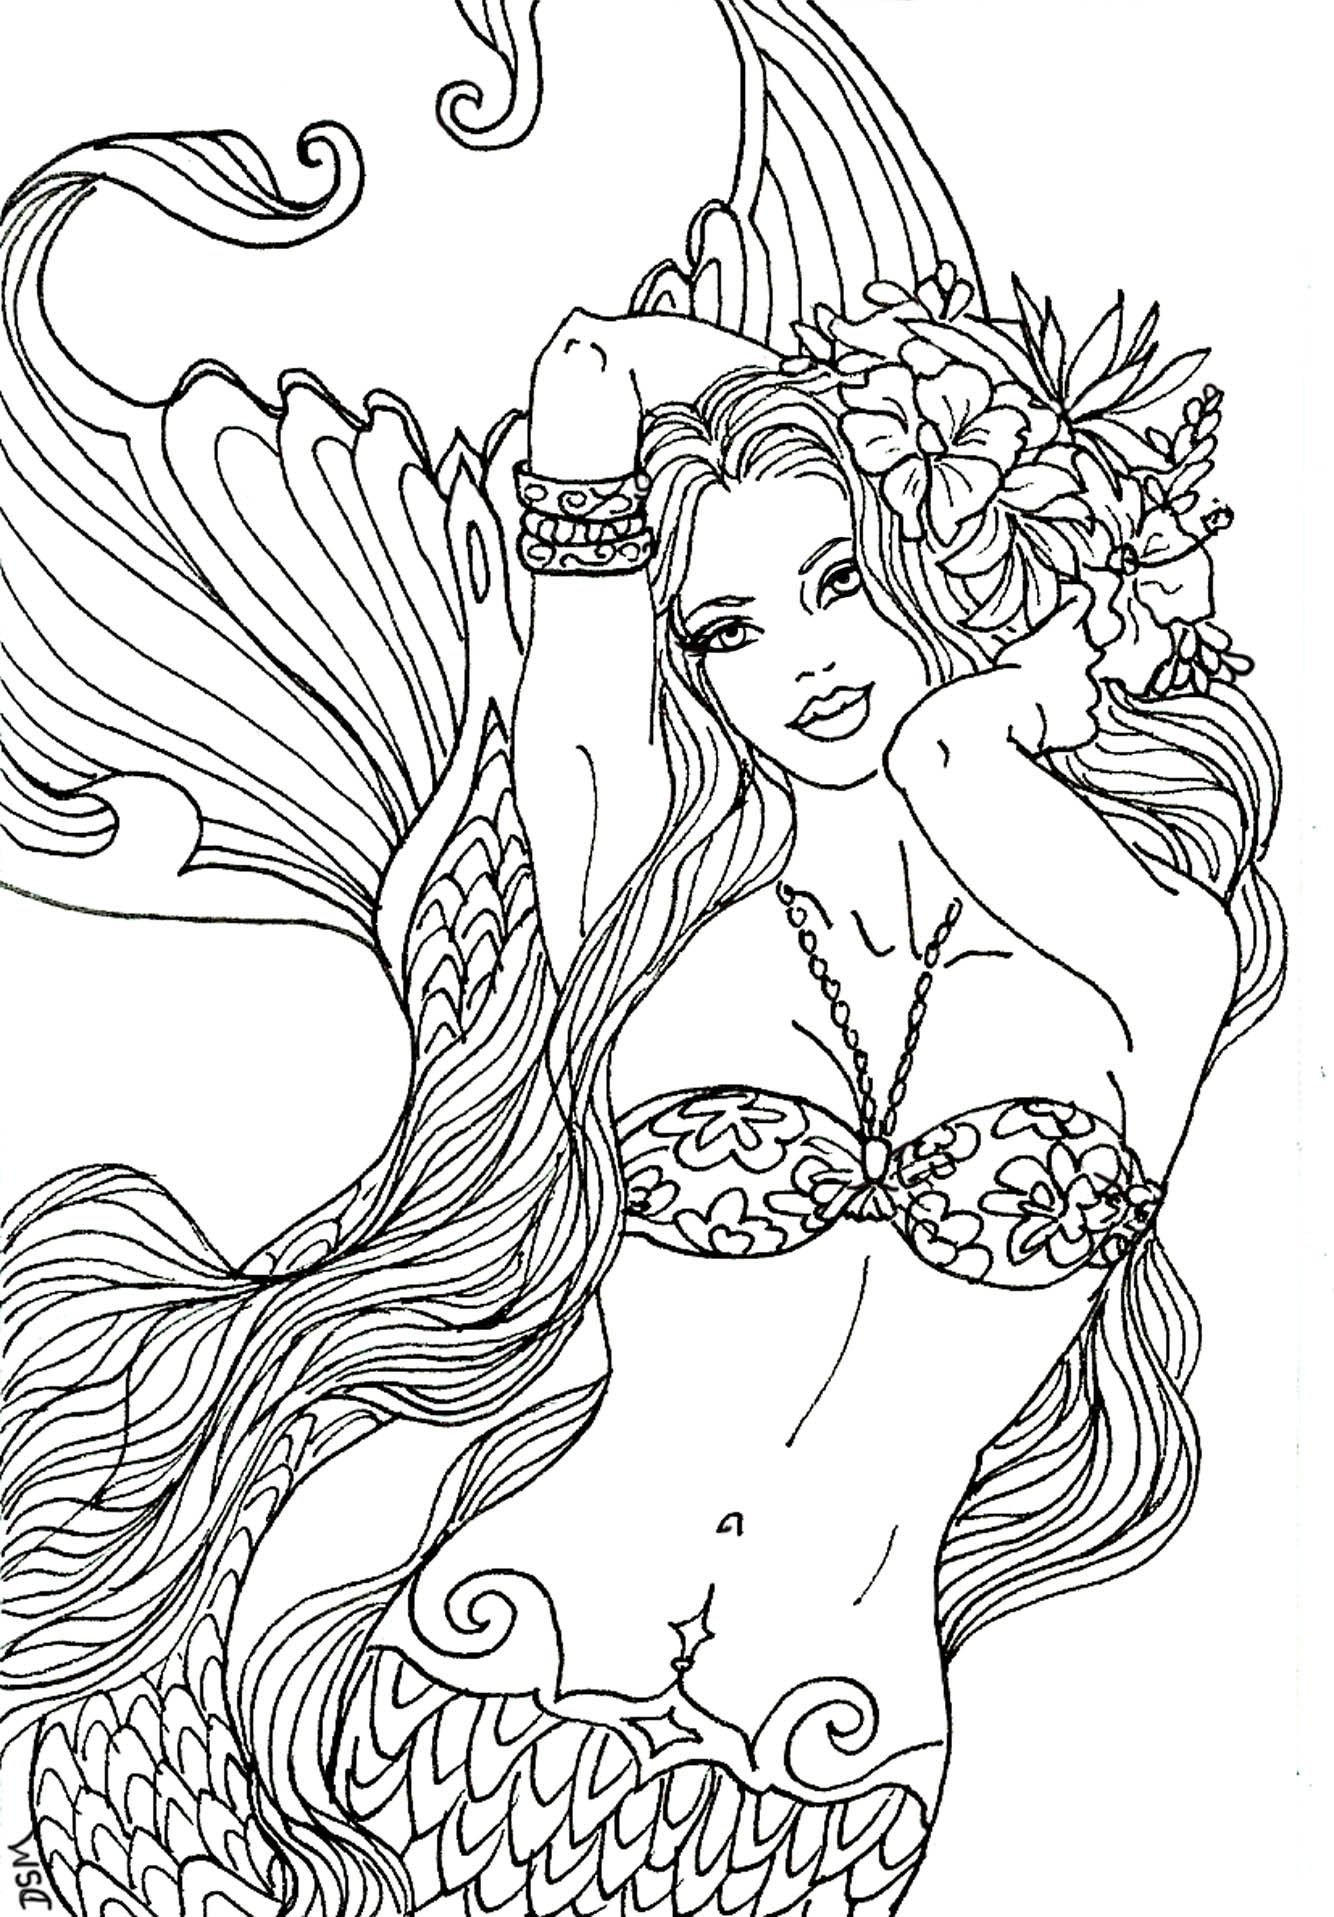 Flower Mermaid by Artist Diane S Martin Mermaid Fantasy Myth ...